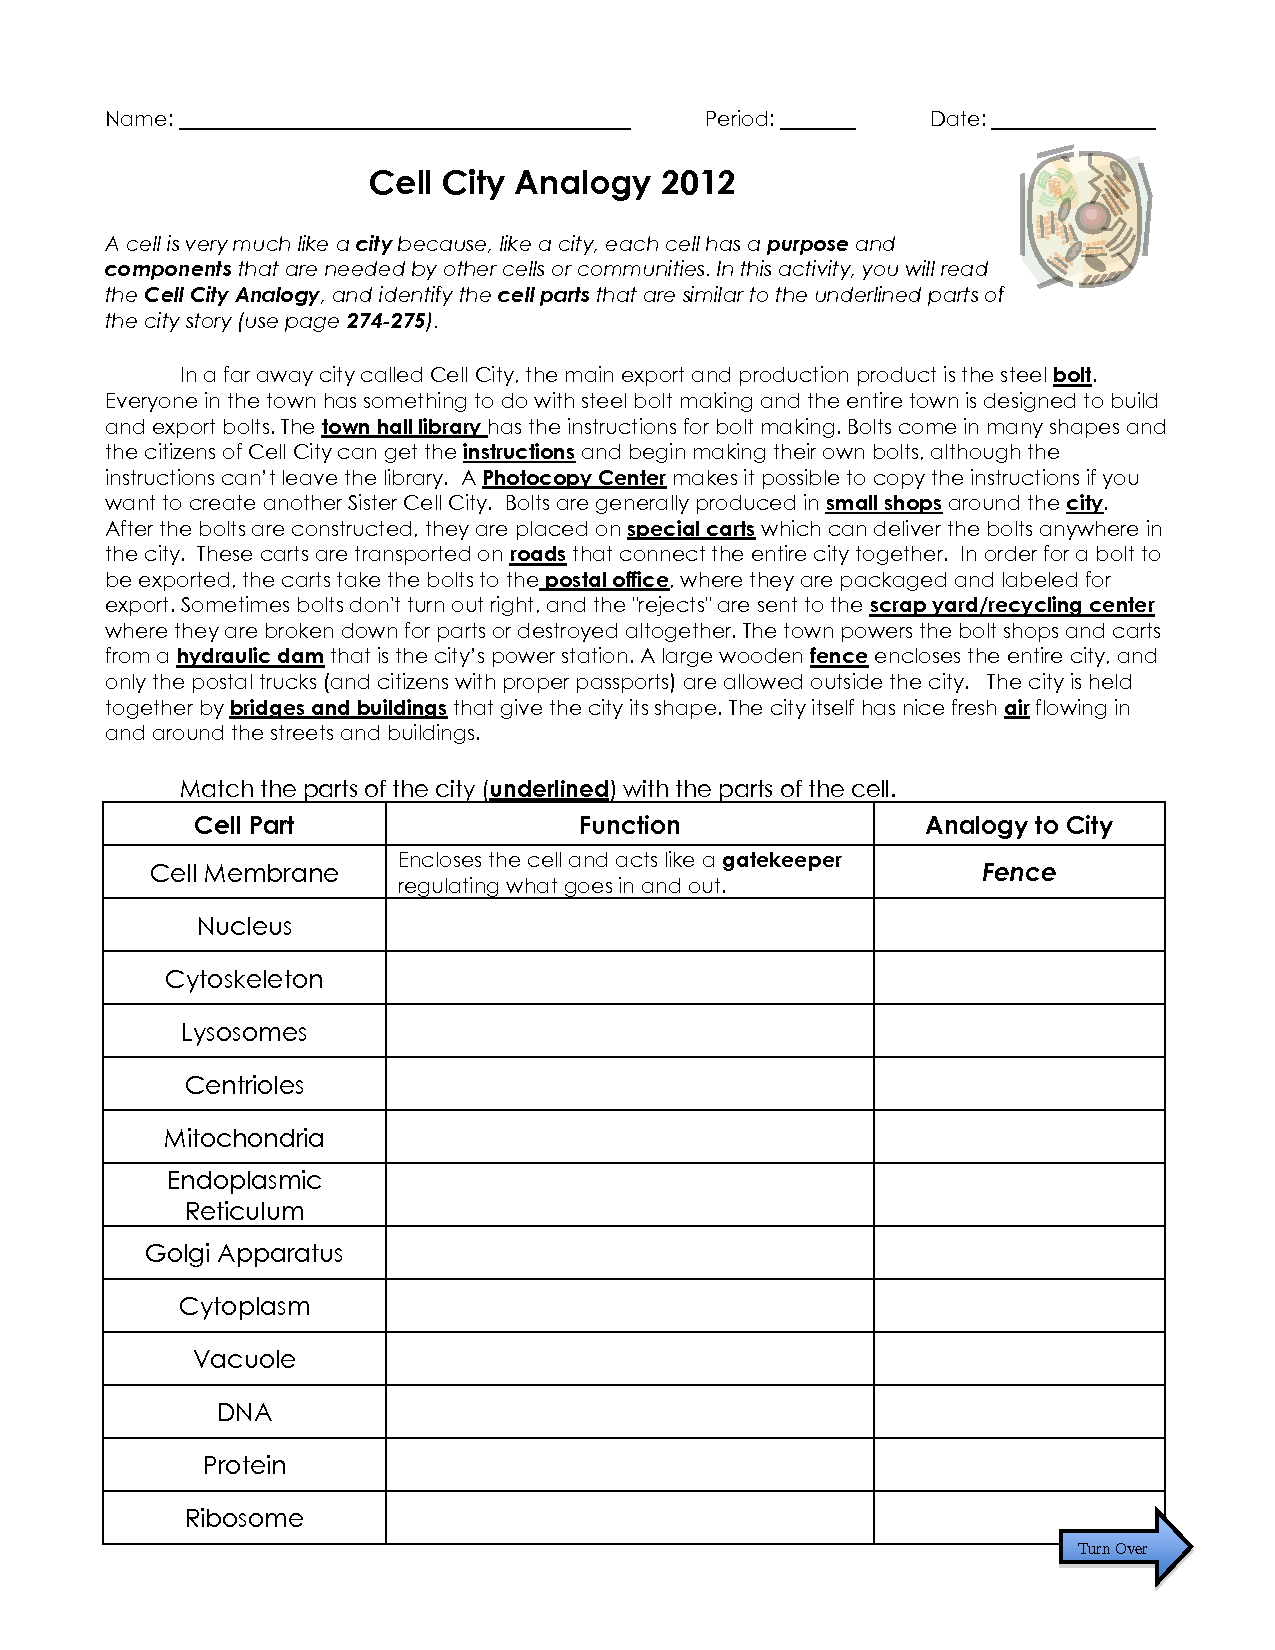 Uncategorized Cell Analogy Worksheet cell city analogy worksheet 201815 png education png